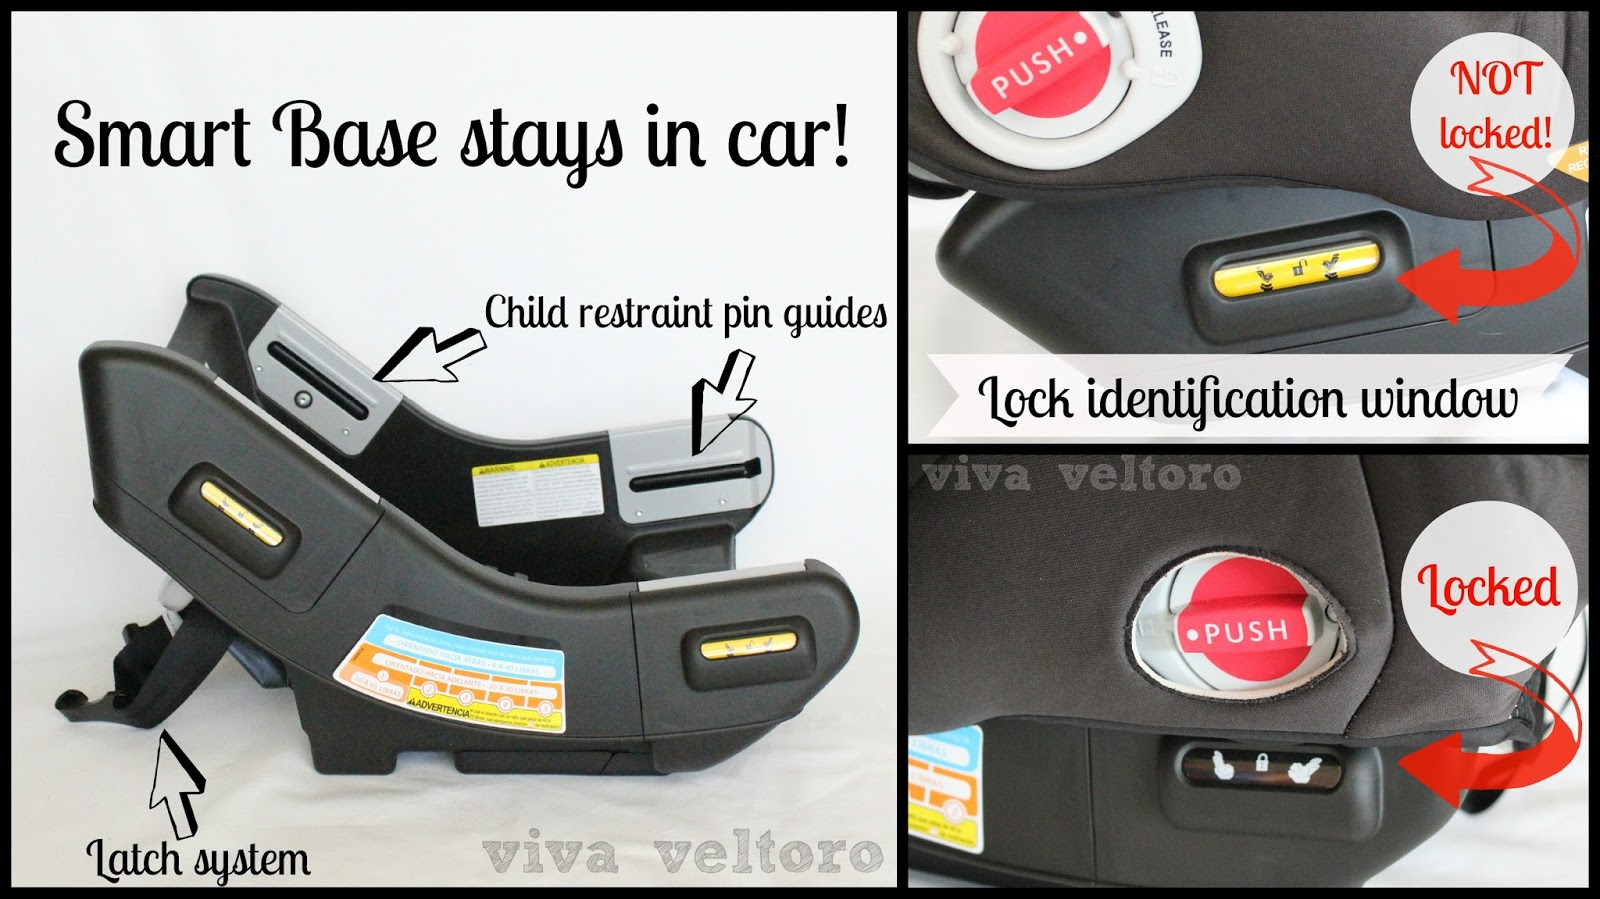 Graco Smart Seat With Safety Surround Protection All In One Car Review Viva Veltoro